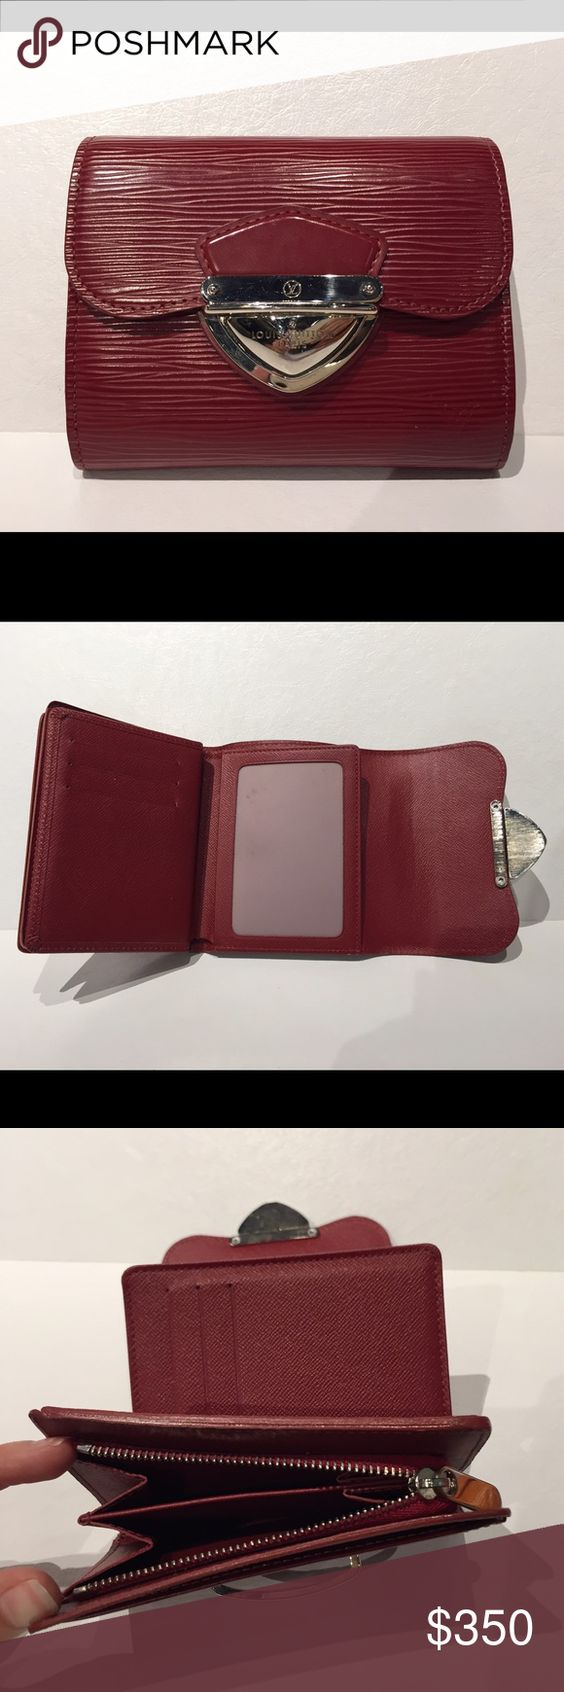 Louis Vuitton dark red epi trifold Koala wallet Delicious deep cherry red Louis Vuitton epi trifold Koala wallet with silver tone hardware. Has 9 card slots, a clear ID holder, and a zip coin pouch. Great condition with barely any signs of wear. Louis Vuitton Bags Wallets